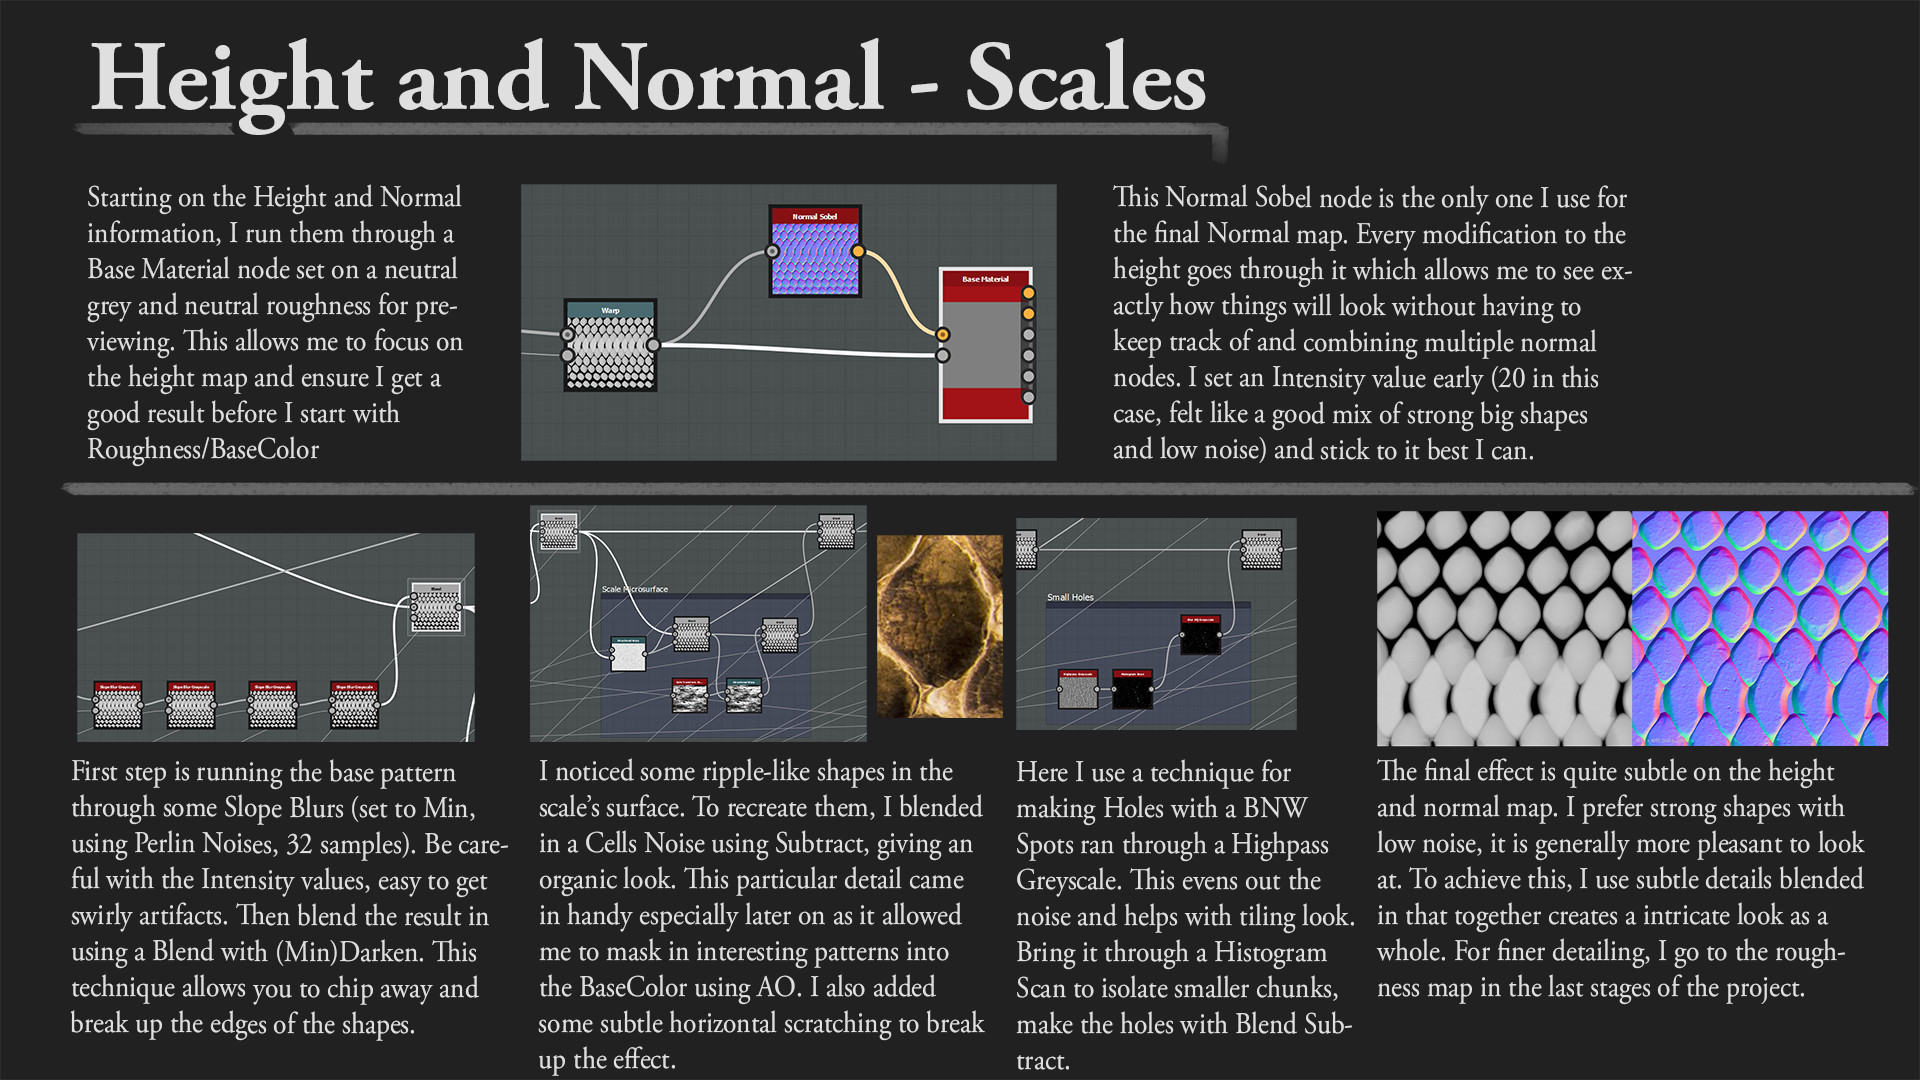 Olle norling height and normal scales smallersize